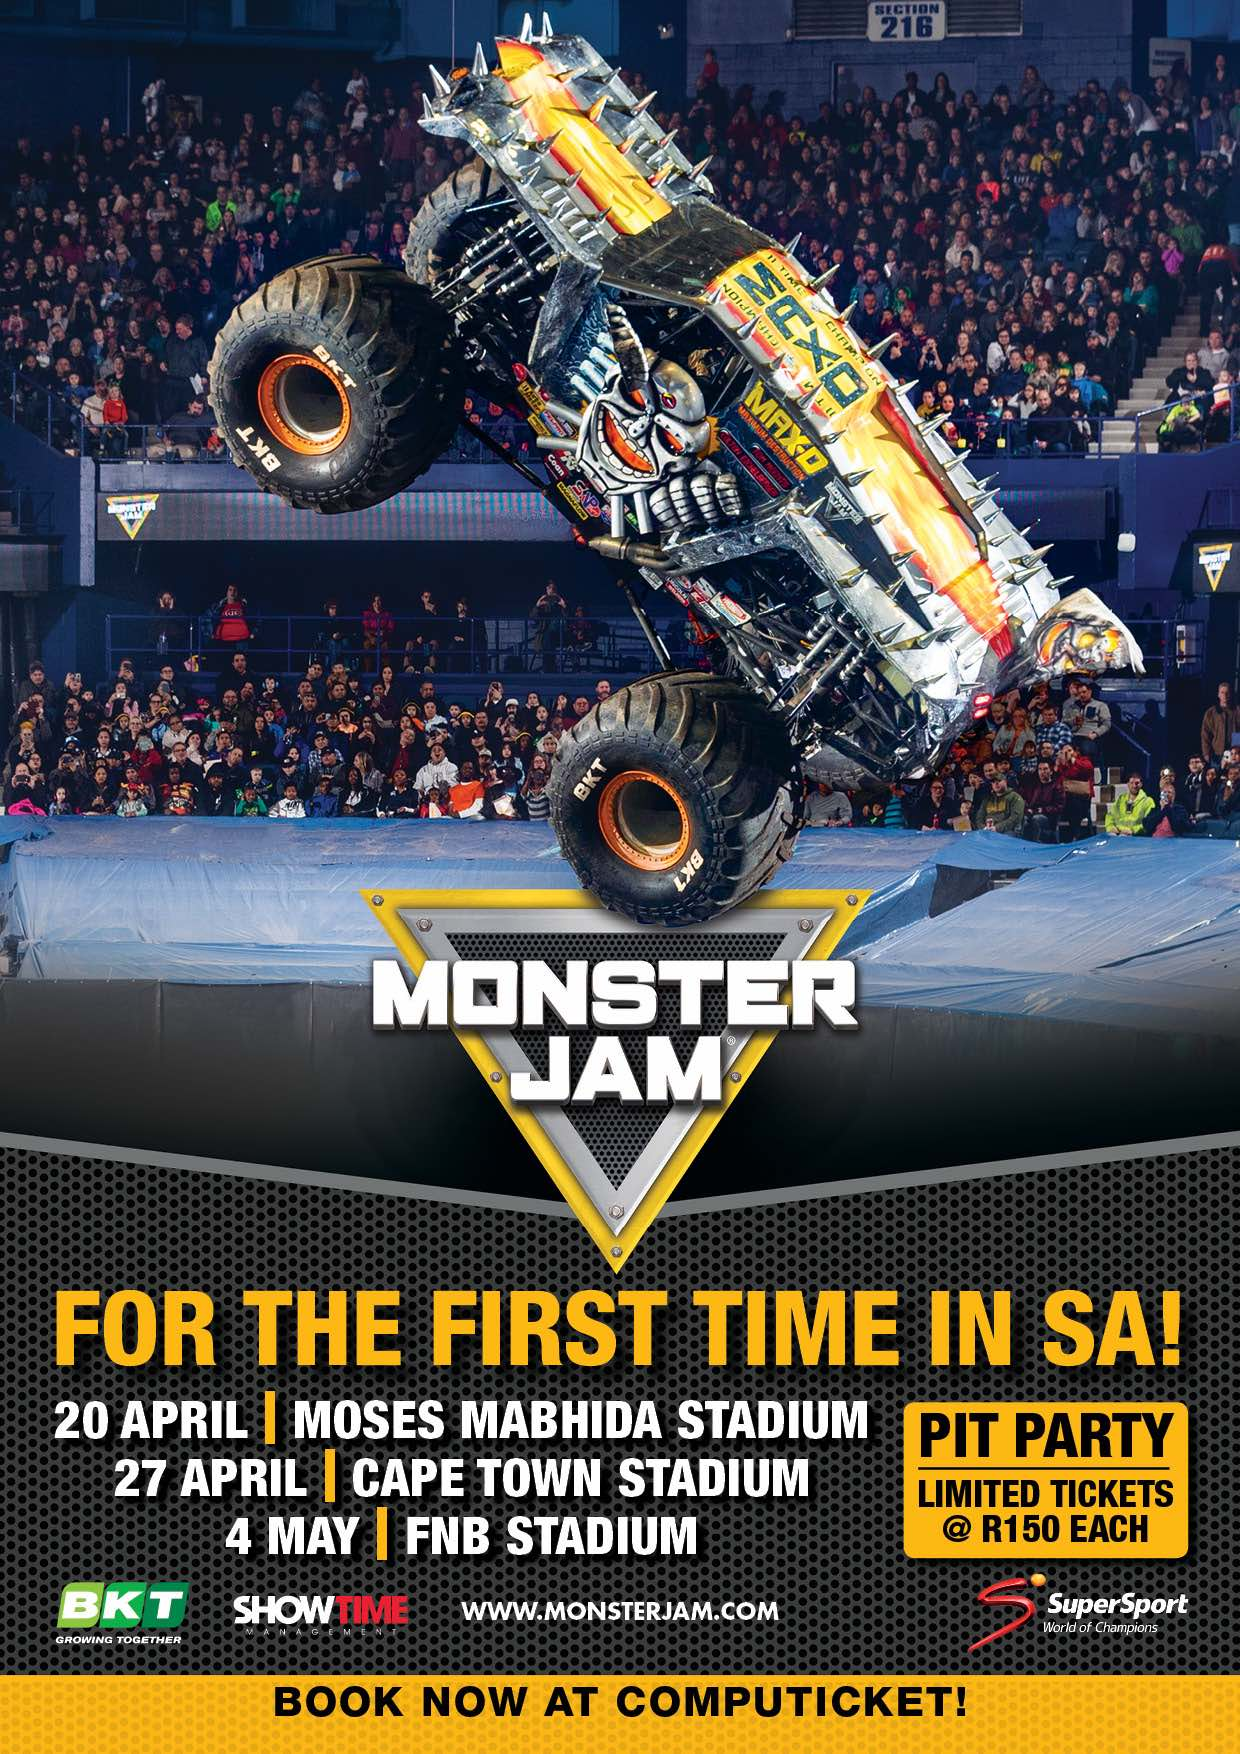 Get ready for Monster Truck madness as<strong> Monster Jam </strong>comes to South Africa for the first time ever in 2019.